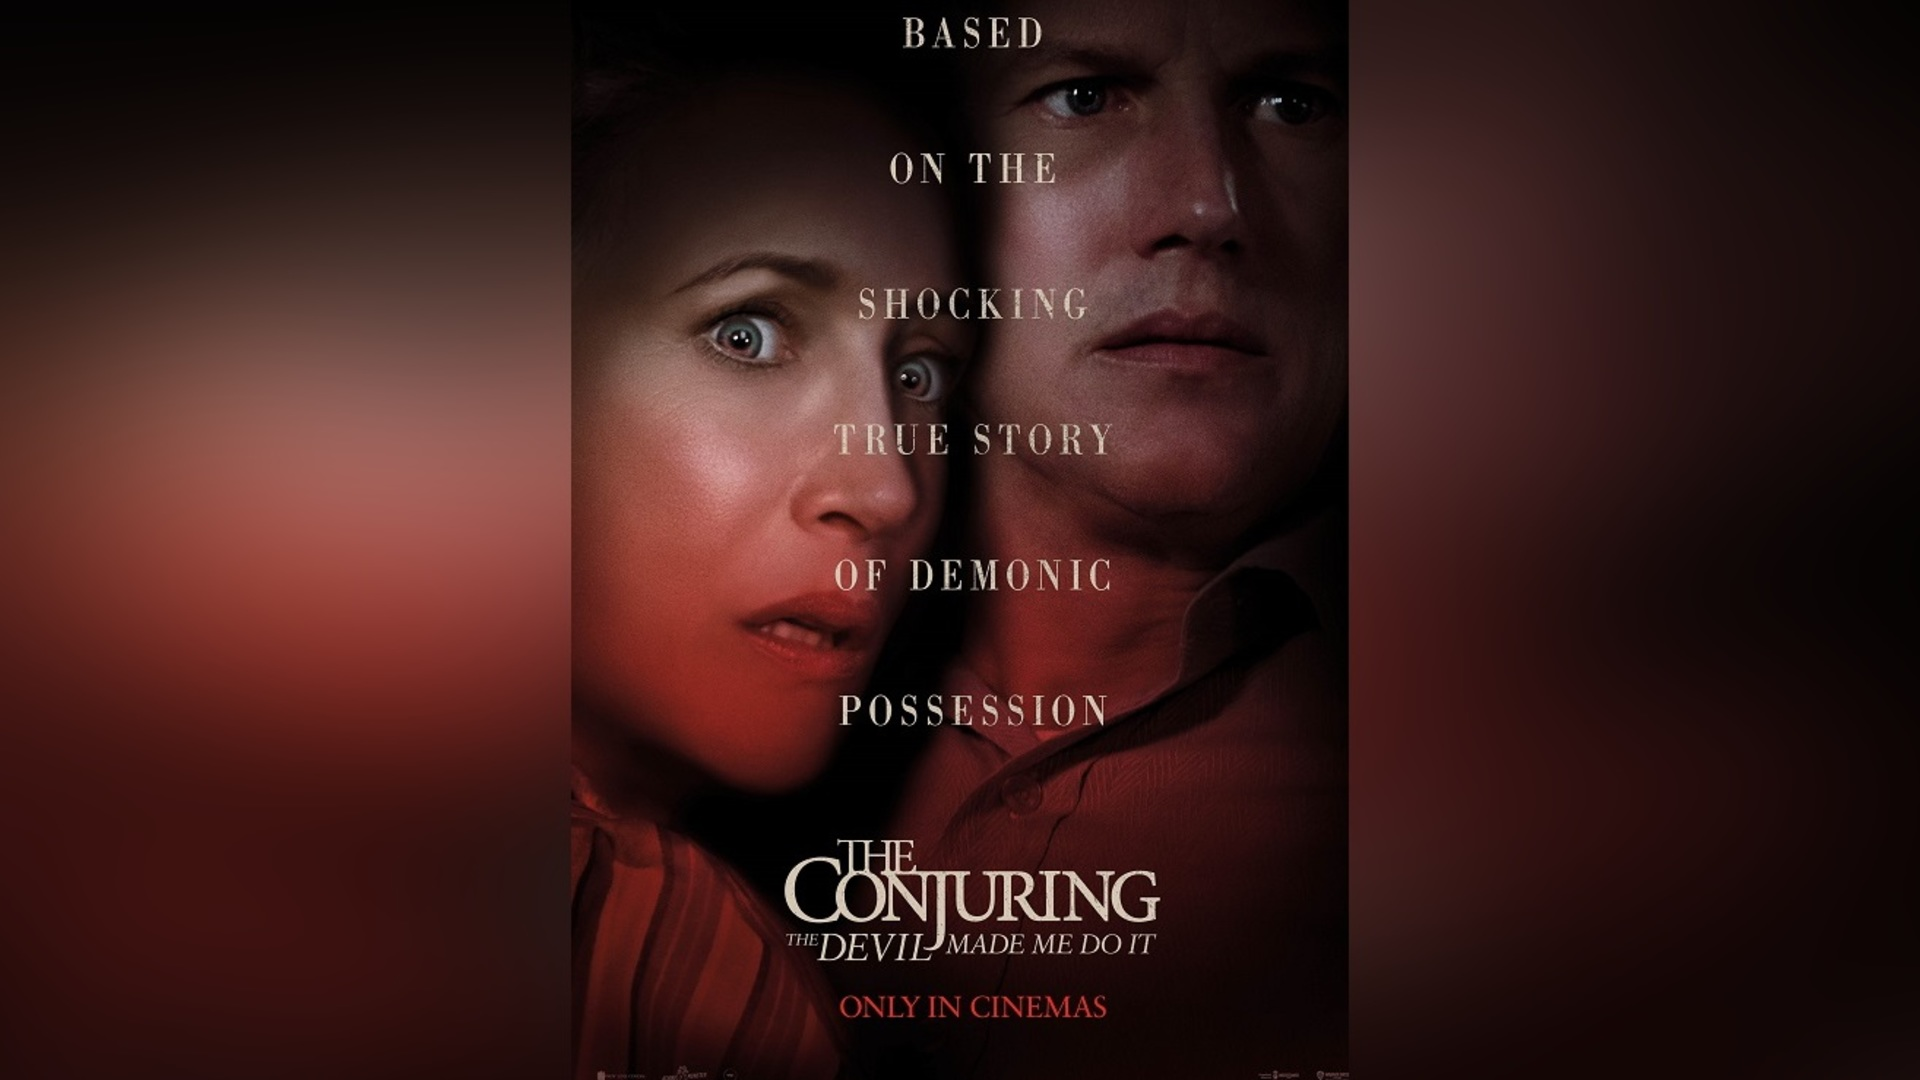 The Conjuring: The Devil Made Me Do It Review:  The Third Film May be a Little Weak, But it's Better Than Some Other Conjuring Universe Films (Rating: ***)